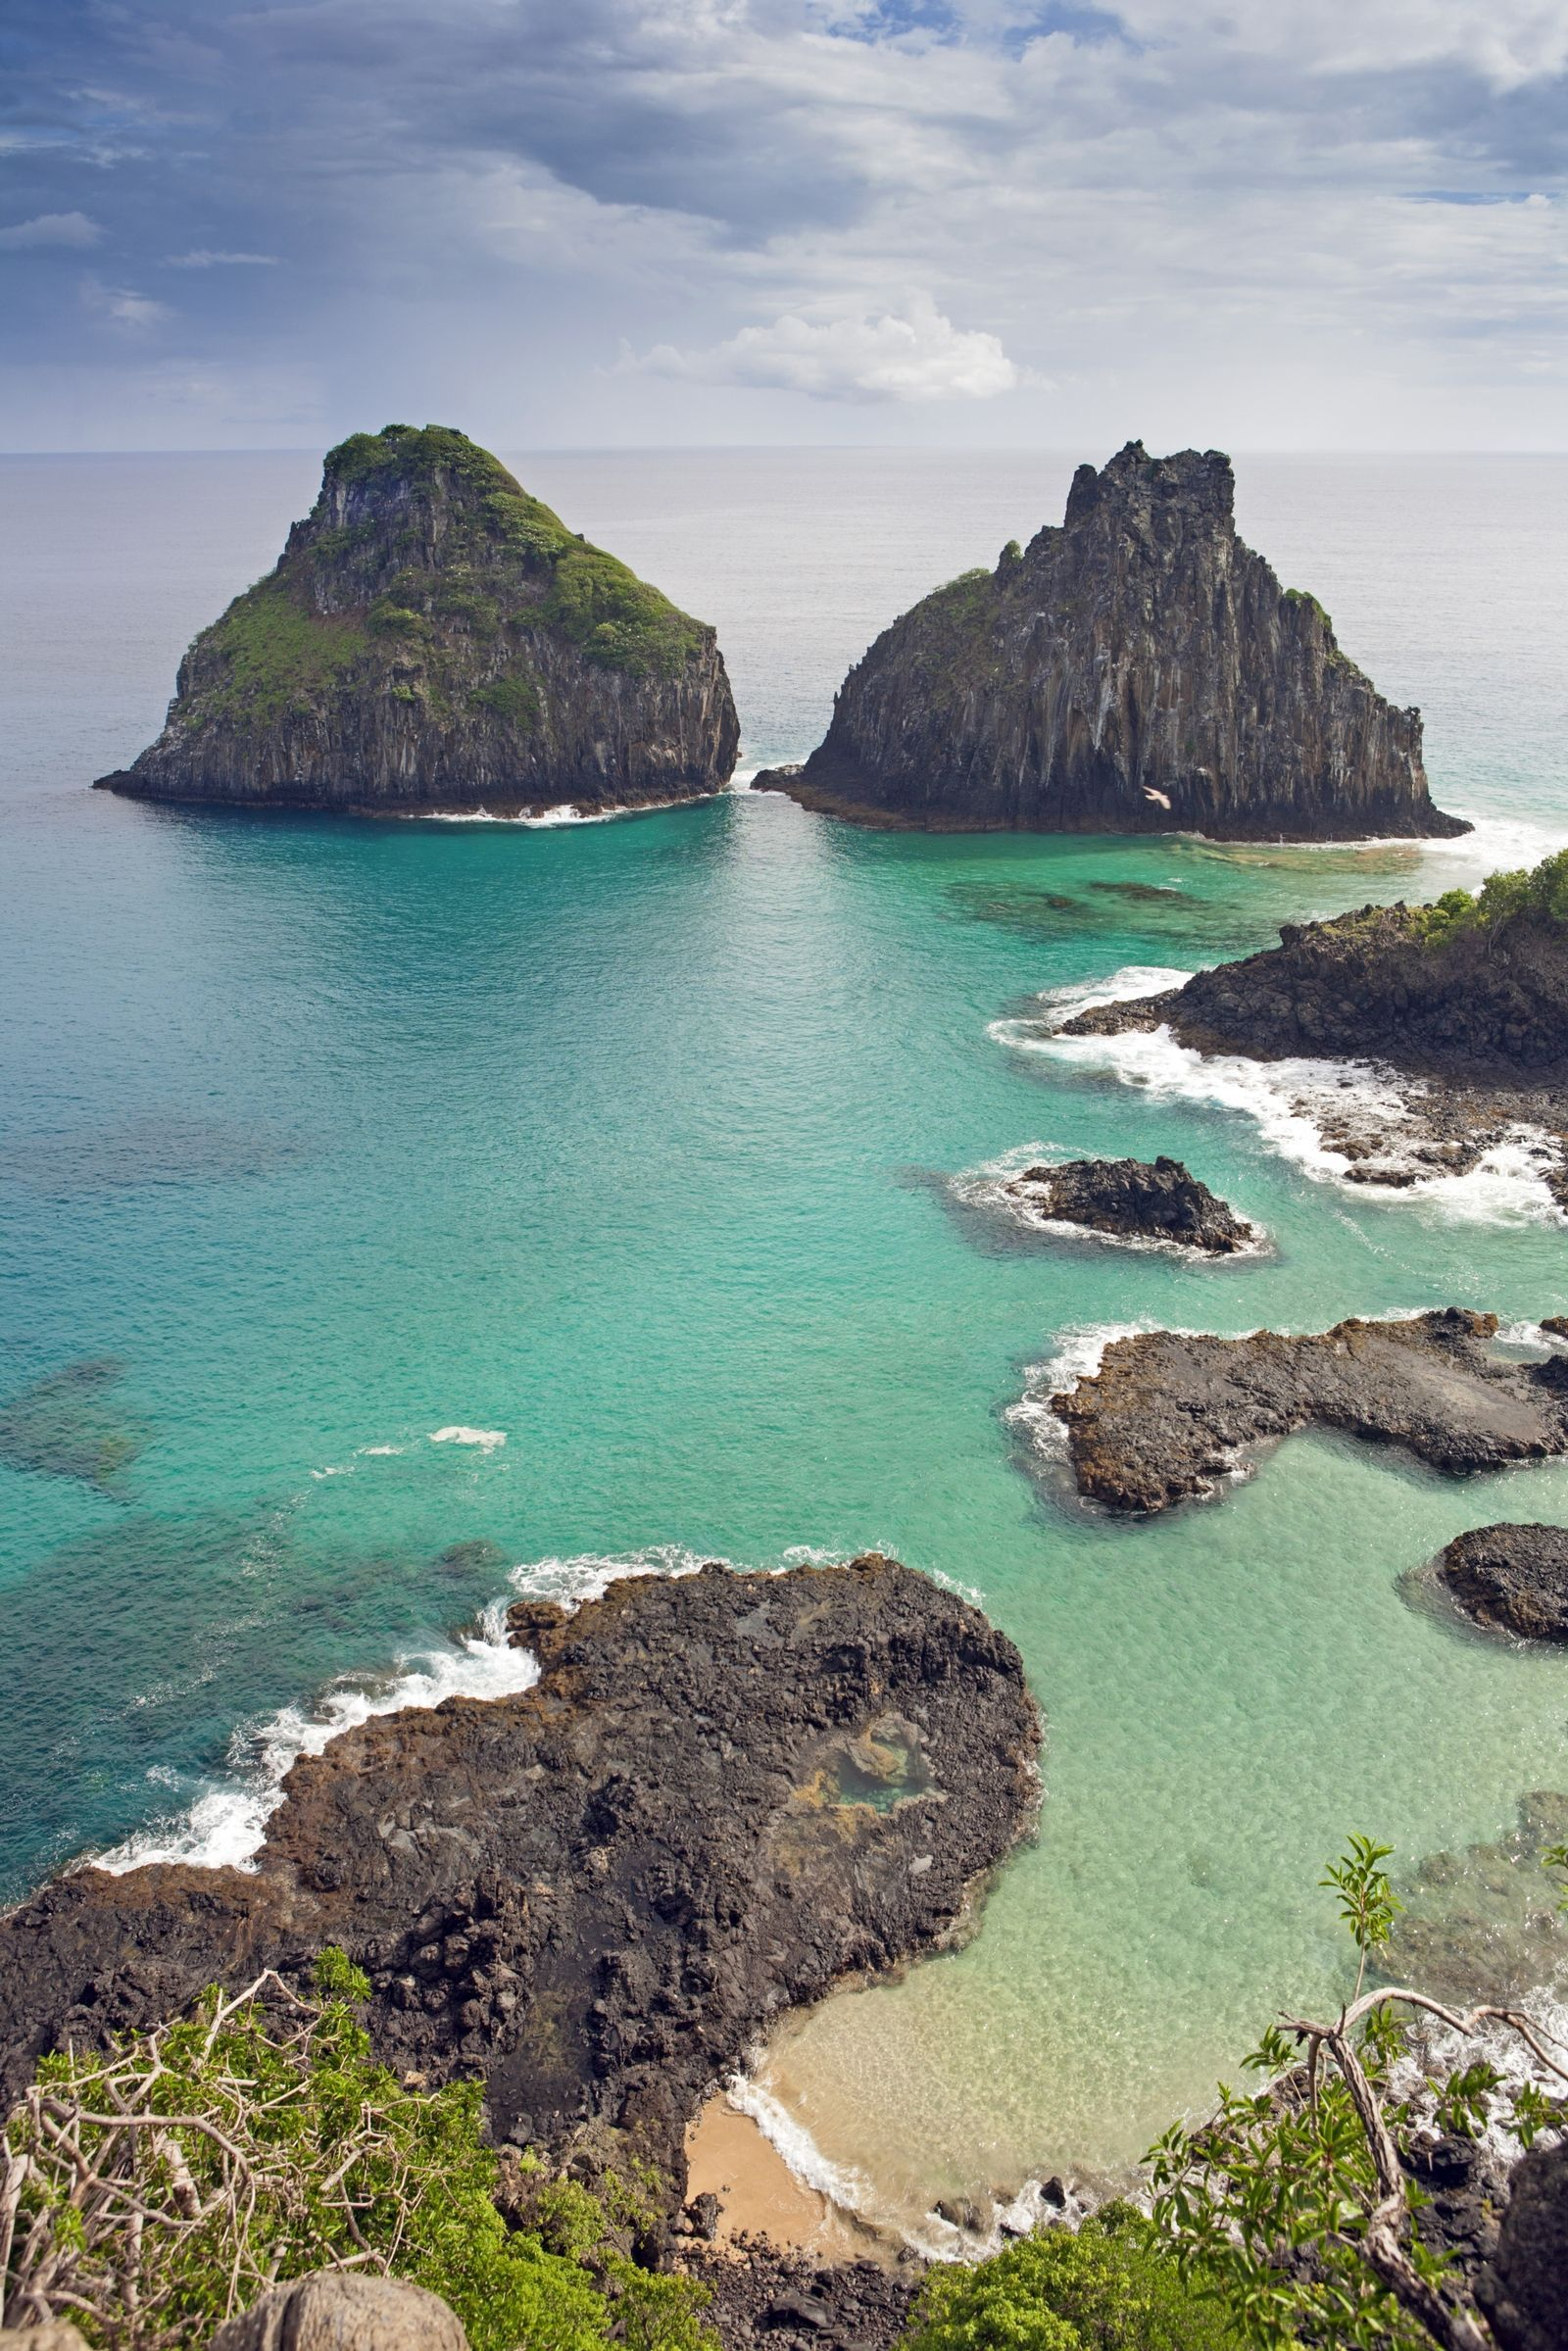 The Most Beautiful Places In The World Brazil Travel - The 30 most beautiful travel destinations on earth